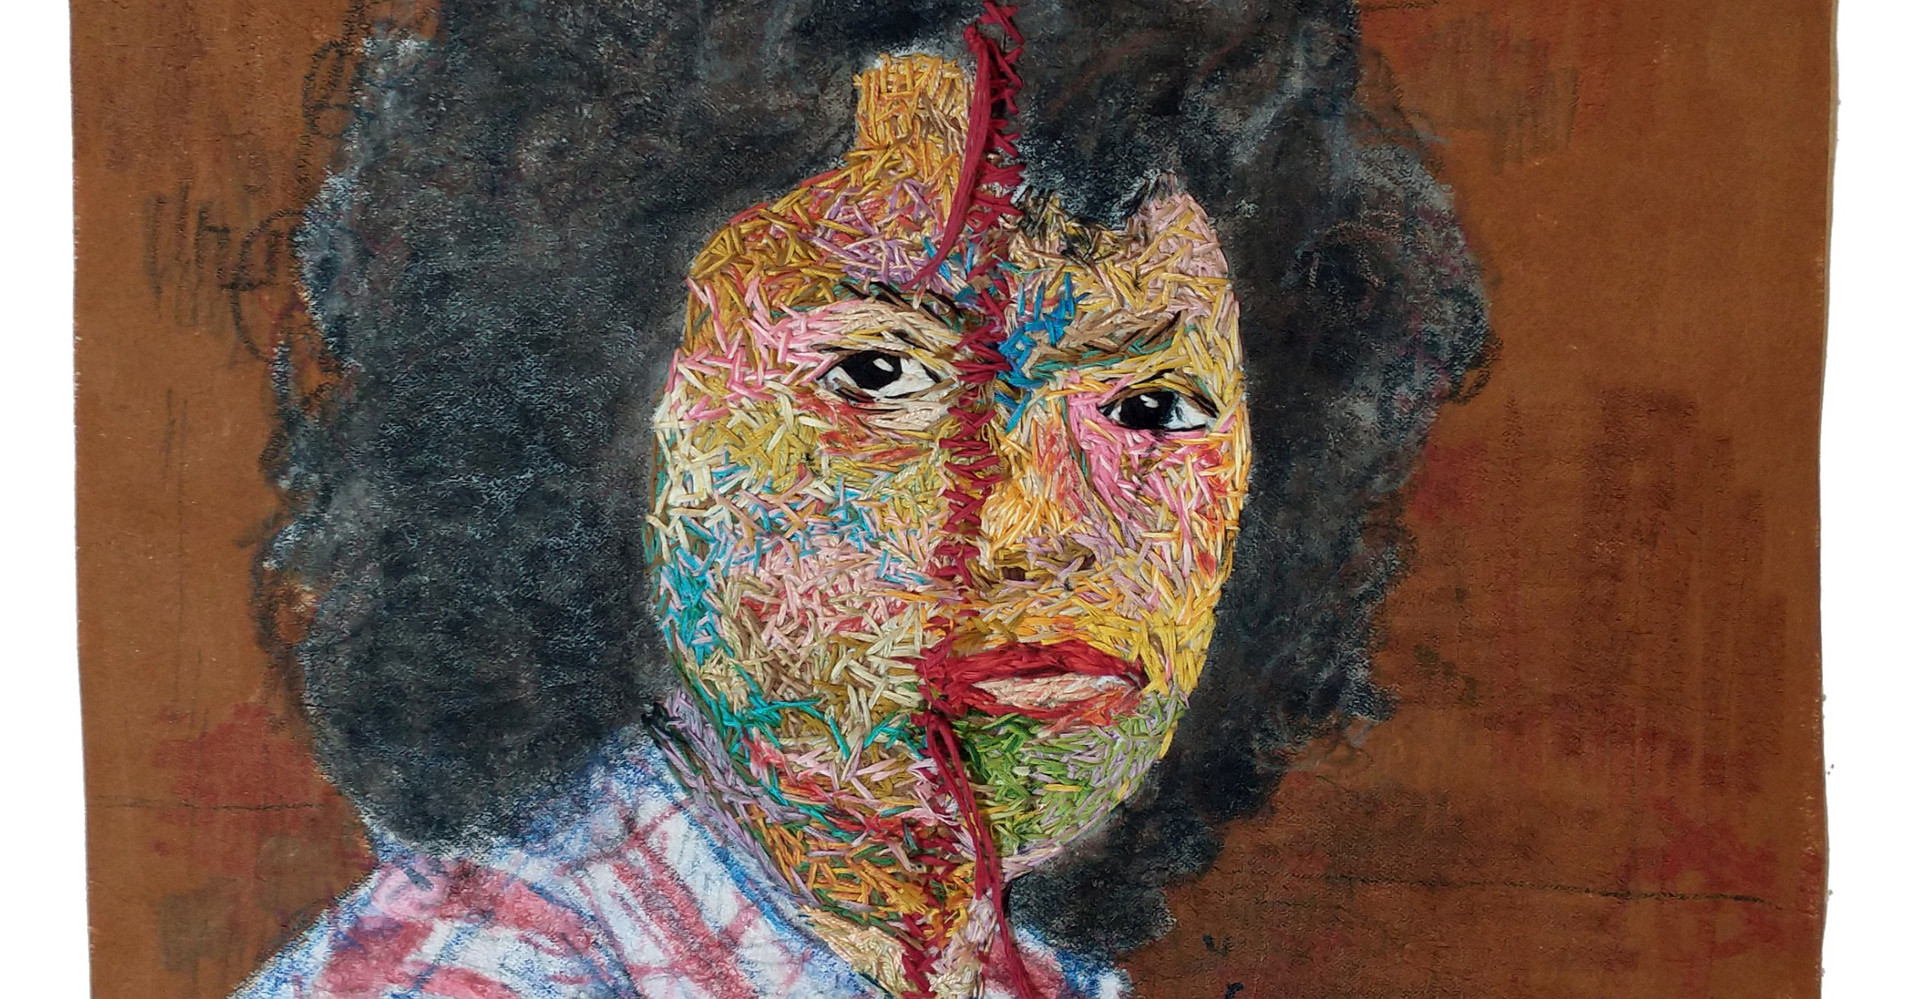 NOT FOR SALE #1: Berta Cáceres